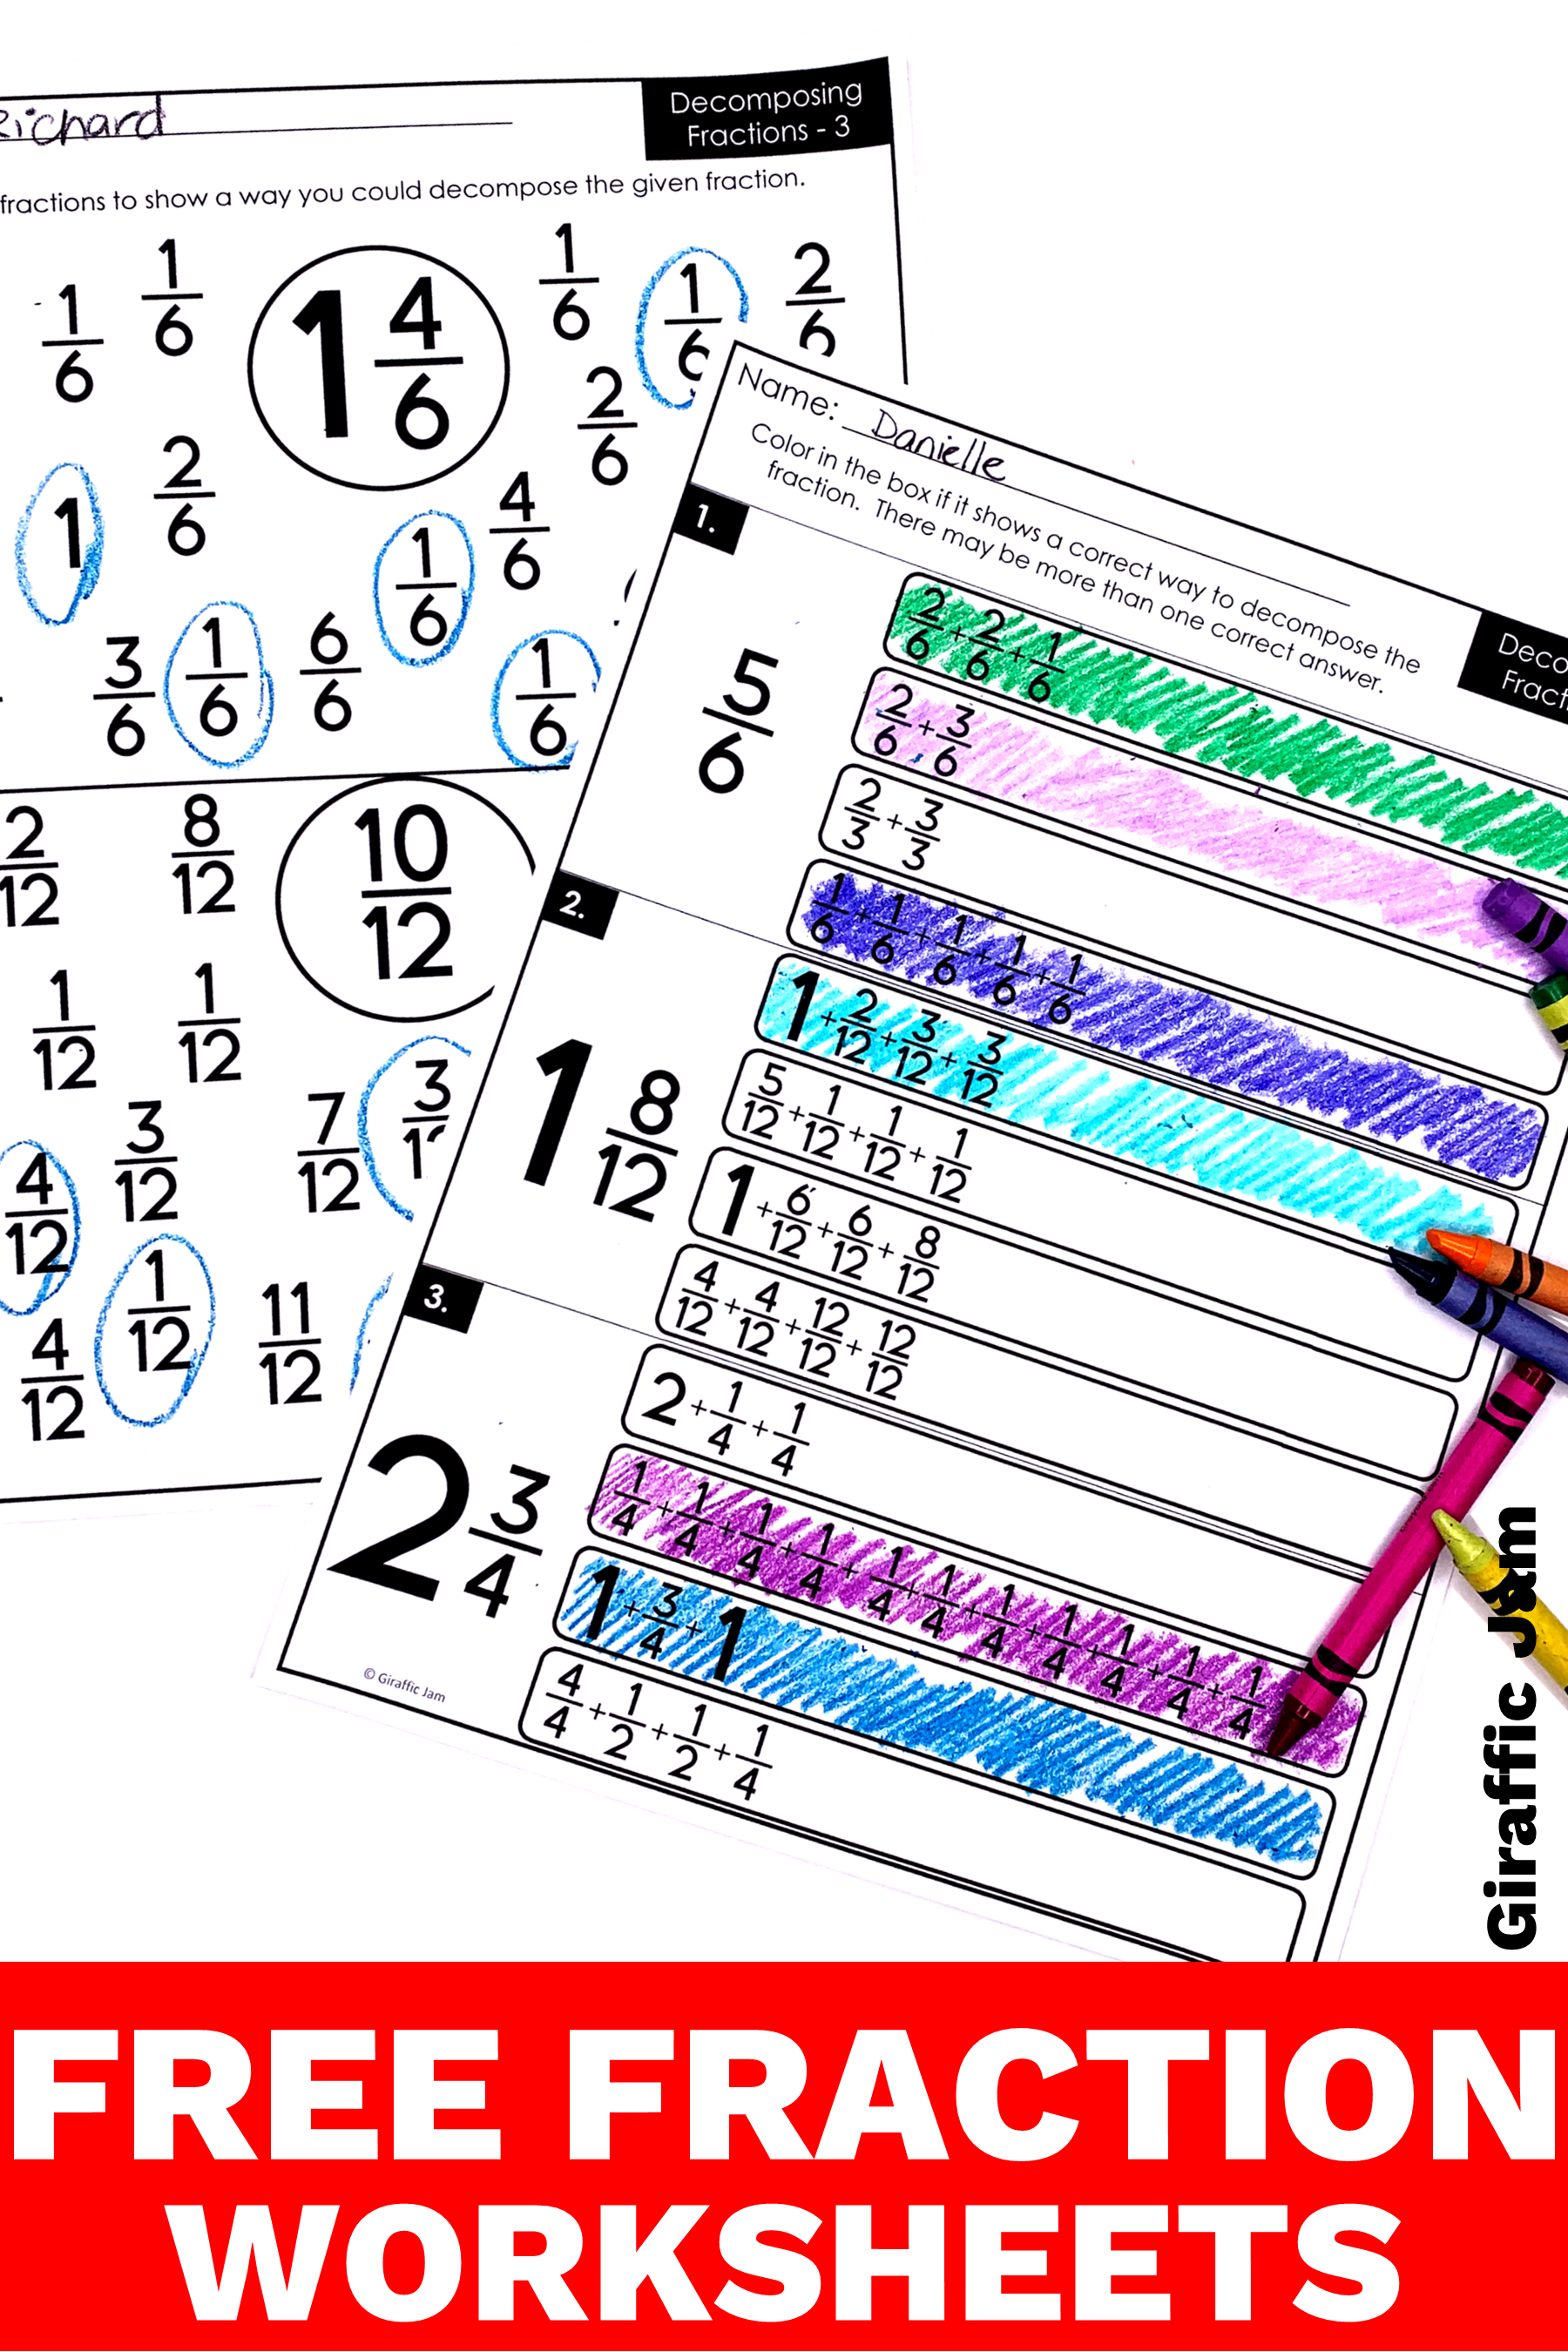 4th Grade Fractions Decomposing Fractions Fraction Worksheets 4th Grade Math Worksheets Fractions Worksheets 4th Grade Math Worksheets Fraction Homework